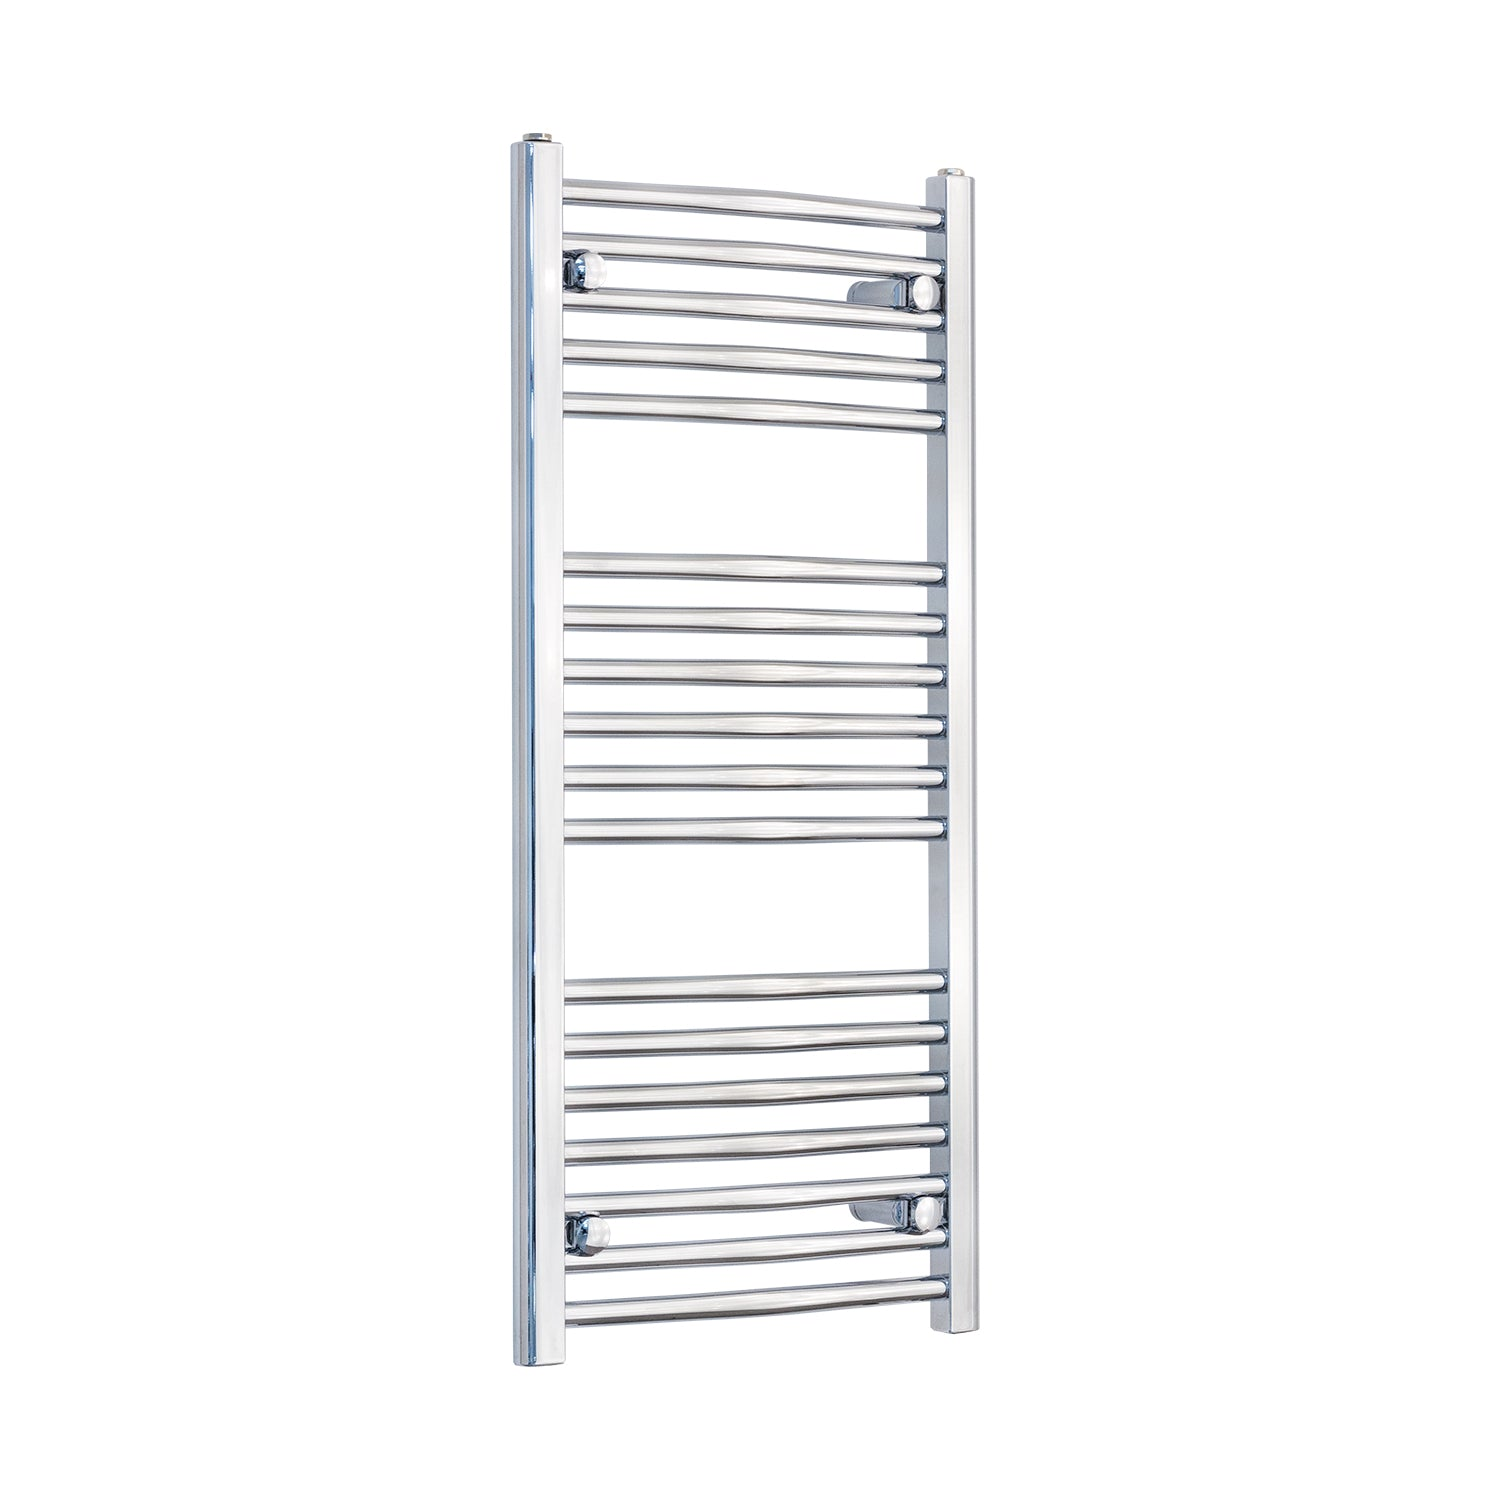 450mm Wide 1000mm High Curved Chrome Heated Towel Rail Radiator HTR,With Straight Valve